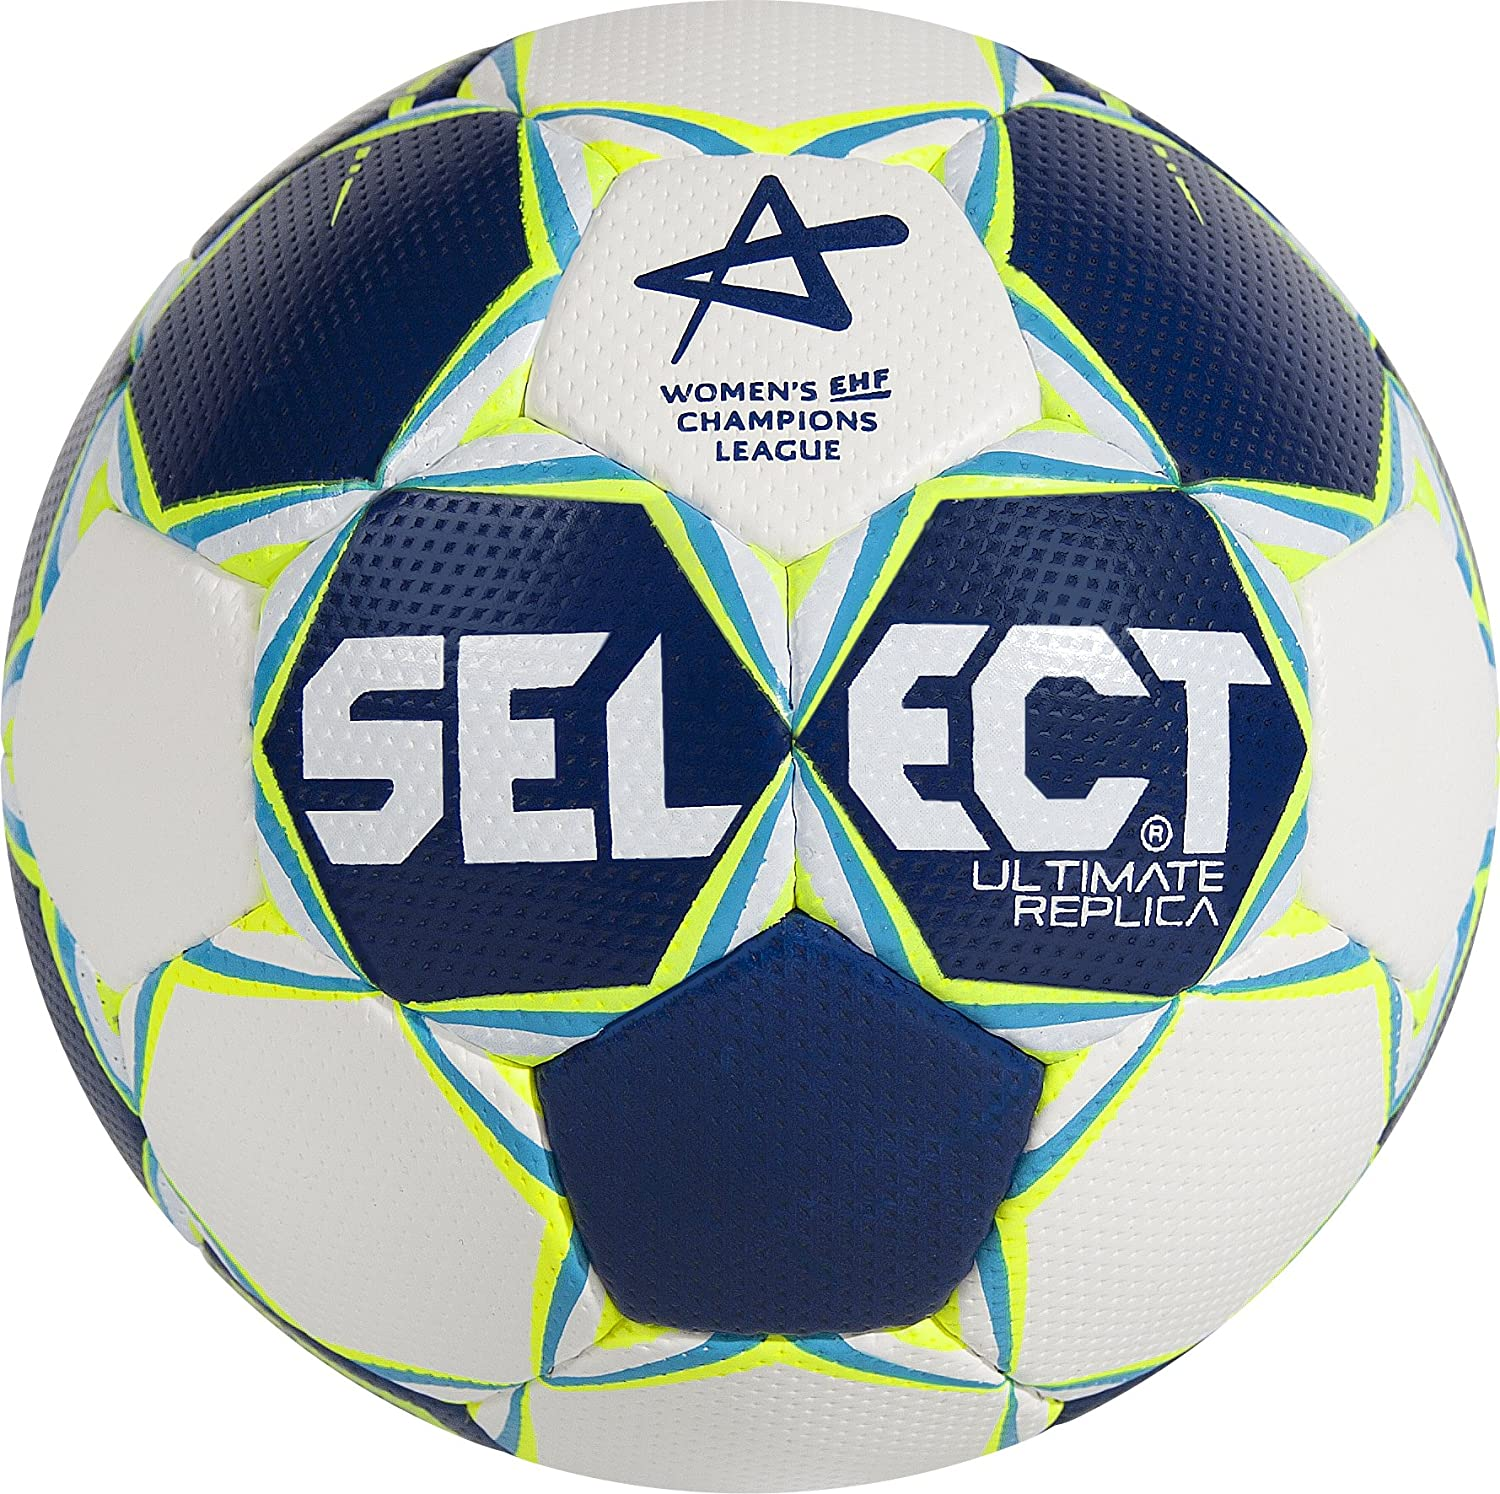 Select Ultimate Replica Ballon de handball CL pour femme Bleu/Blanc/Jaune Fluo 0 1670847205